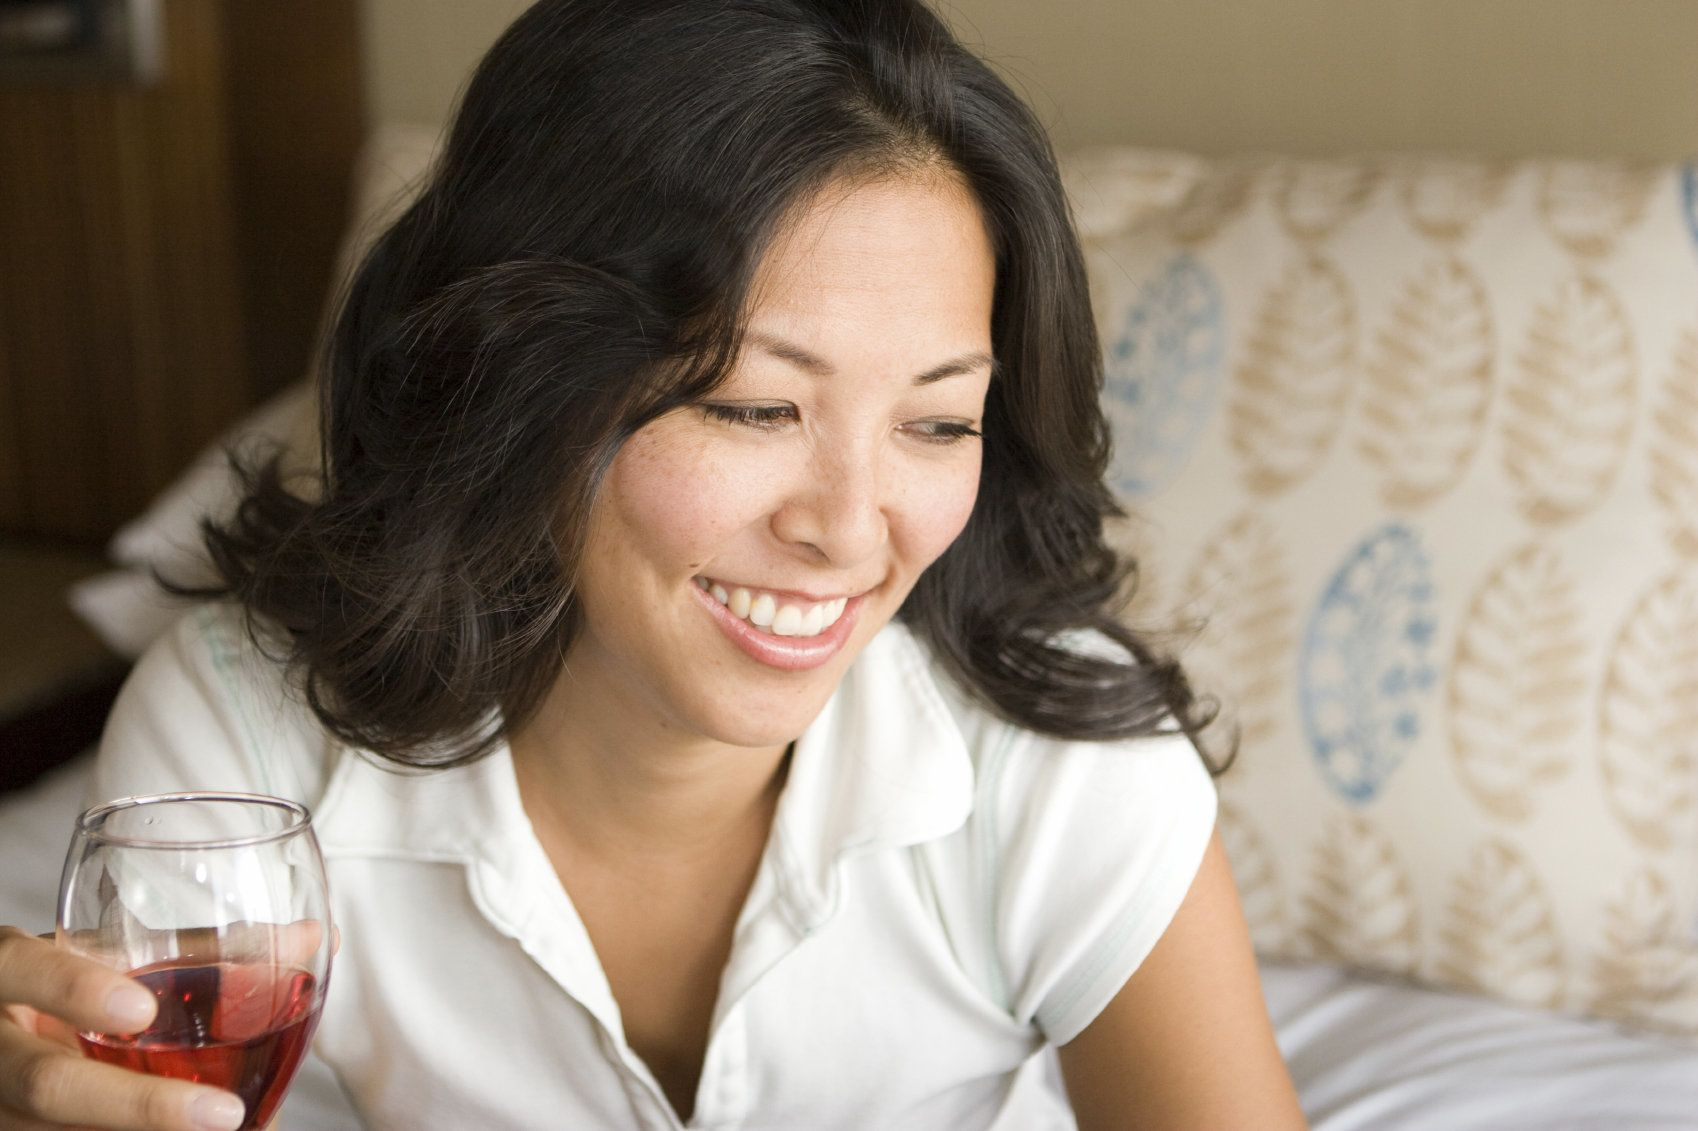 A woman having a glass of wine